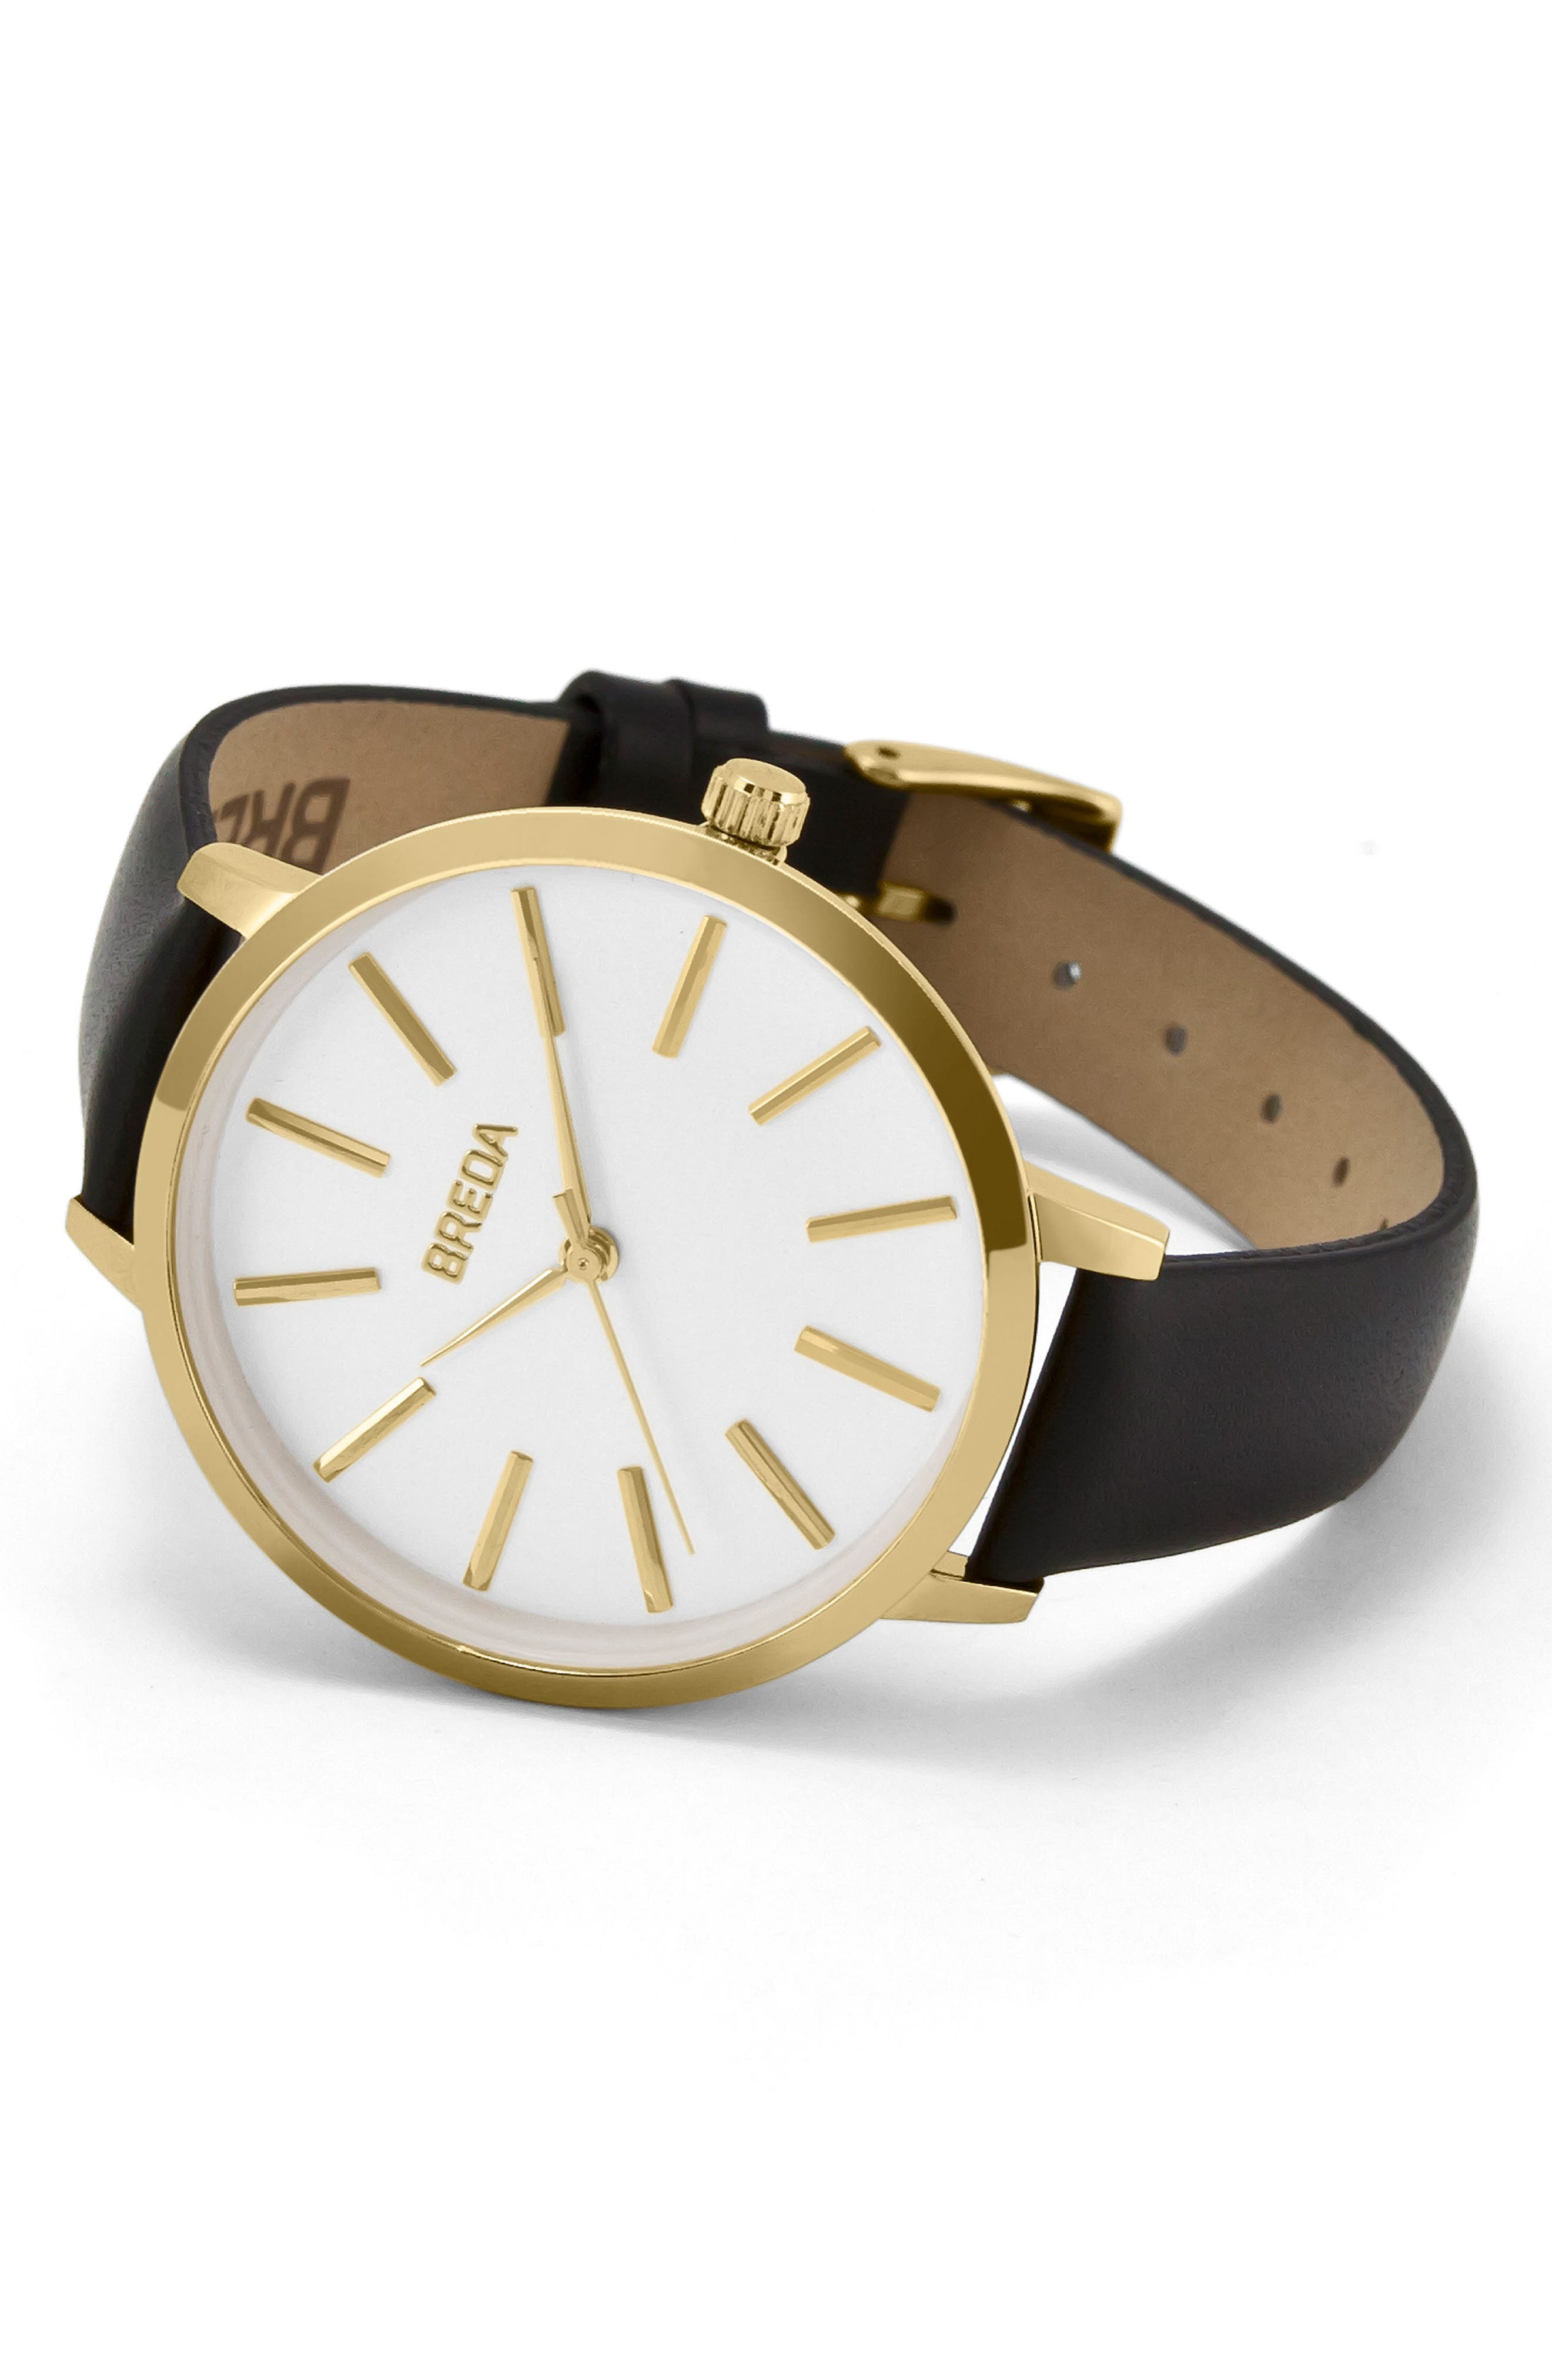 Joule Round Leather Strap Watch, 37mm,                             Alternate thumbnail 2, color,                             Black/ White/ Gold